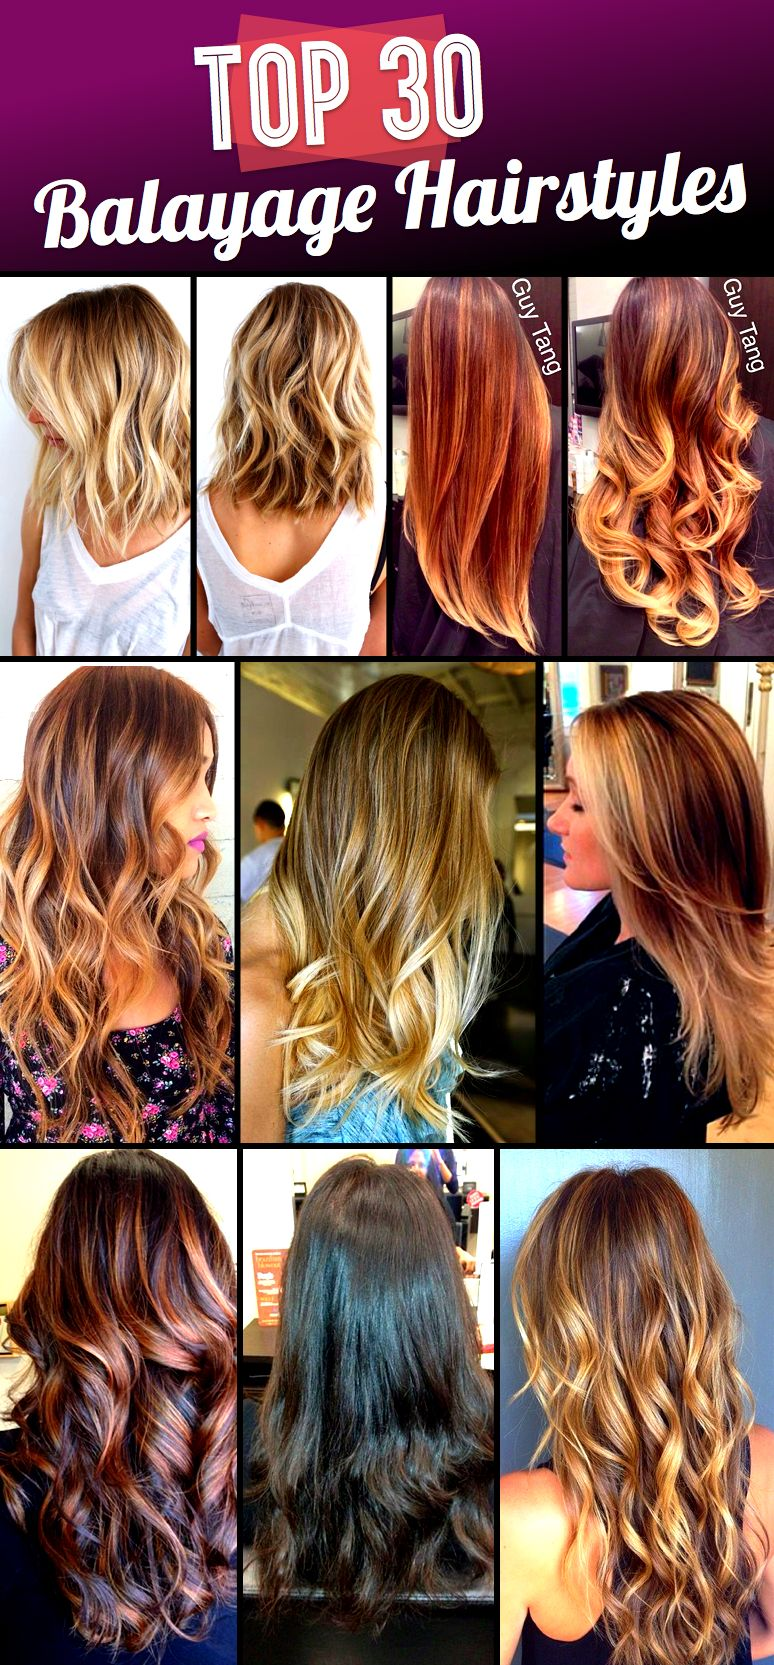 Top 30 Balayage Hairstyles to Give you a Completely New ...